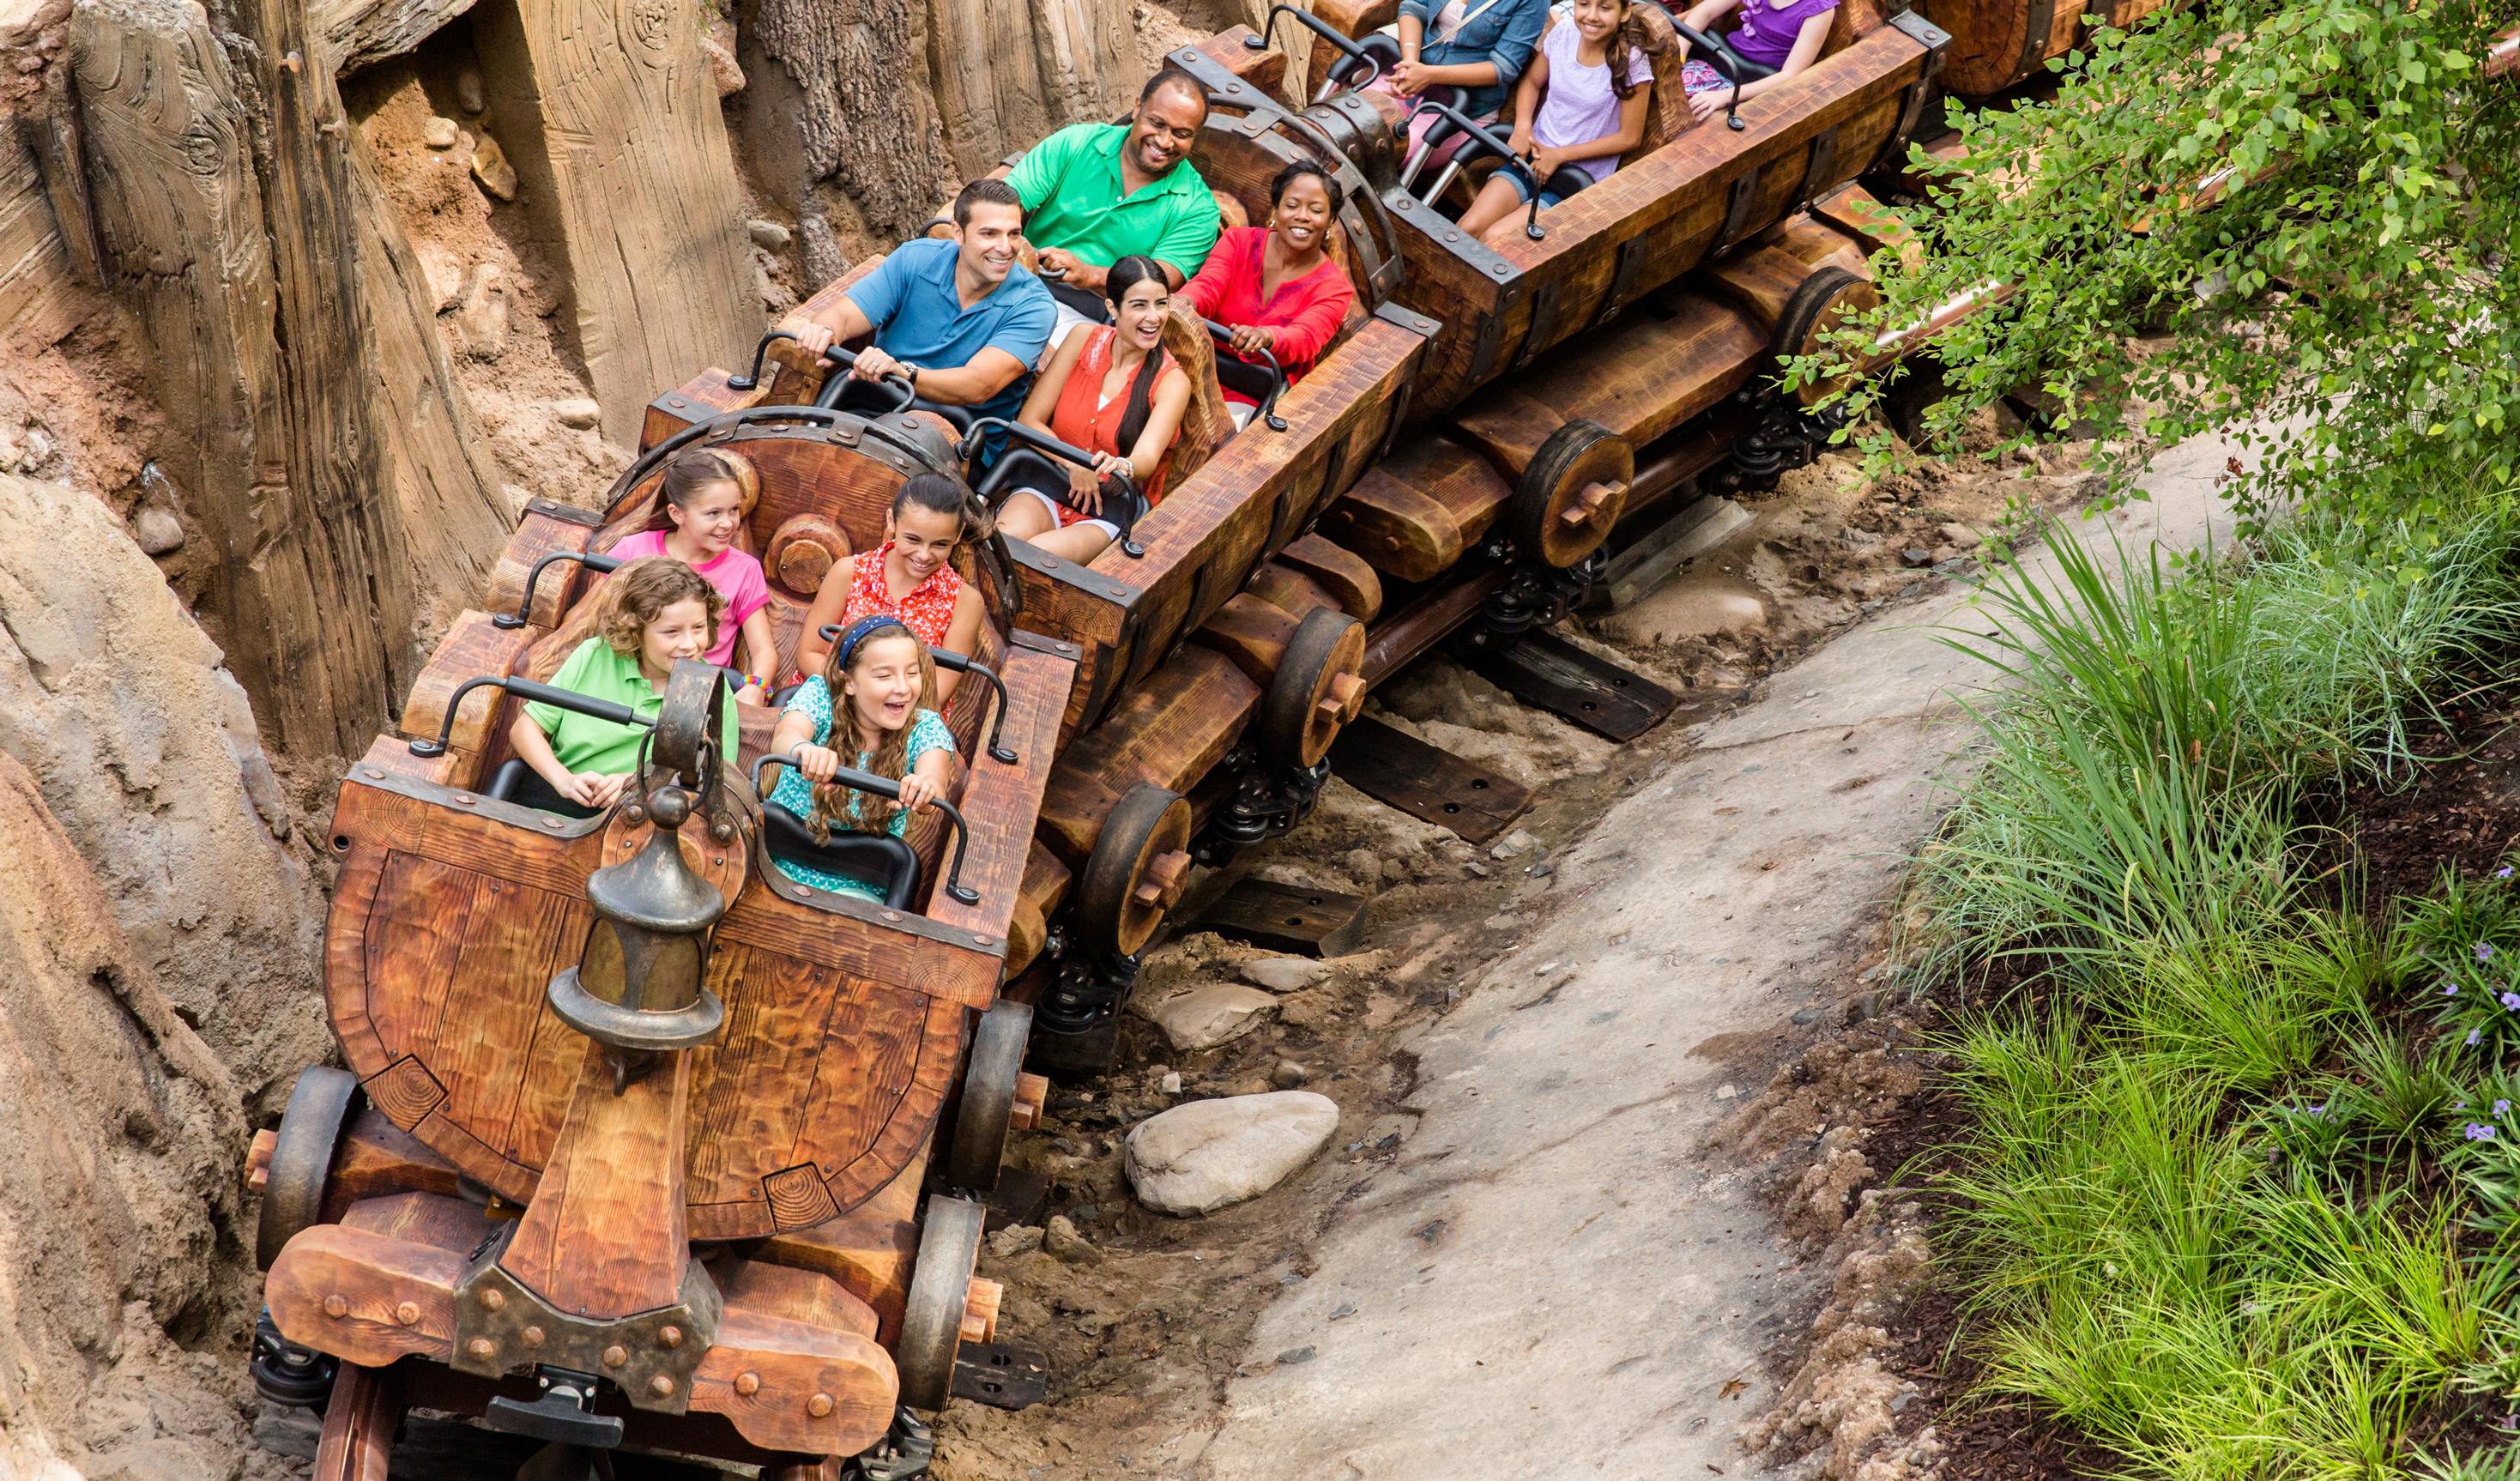 Multiple Guests enjoying a rollicking ride aboard the Seven Dwarfs Mine Train at Magic Kingdom park